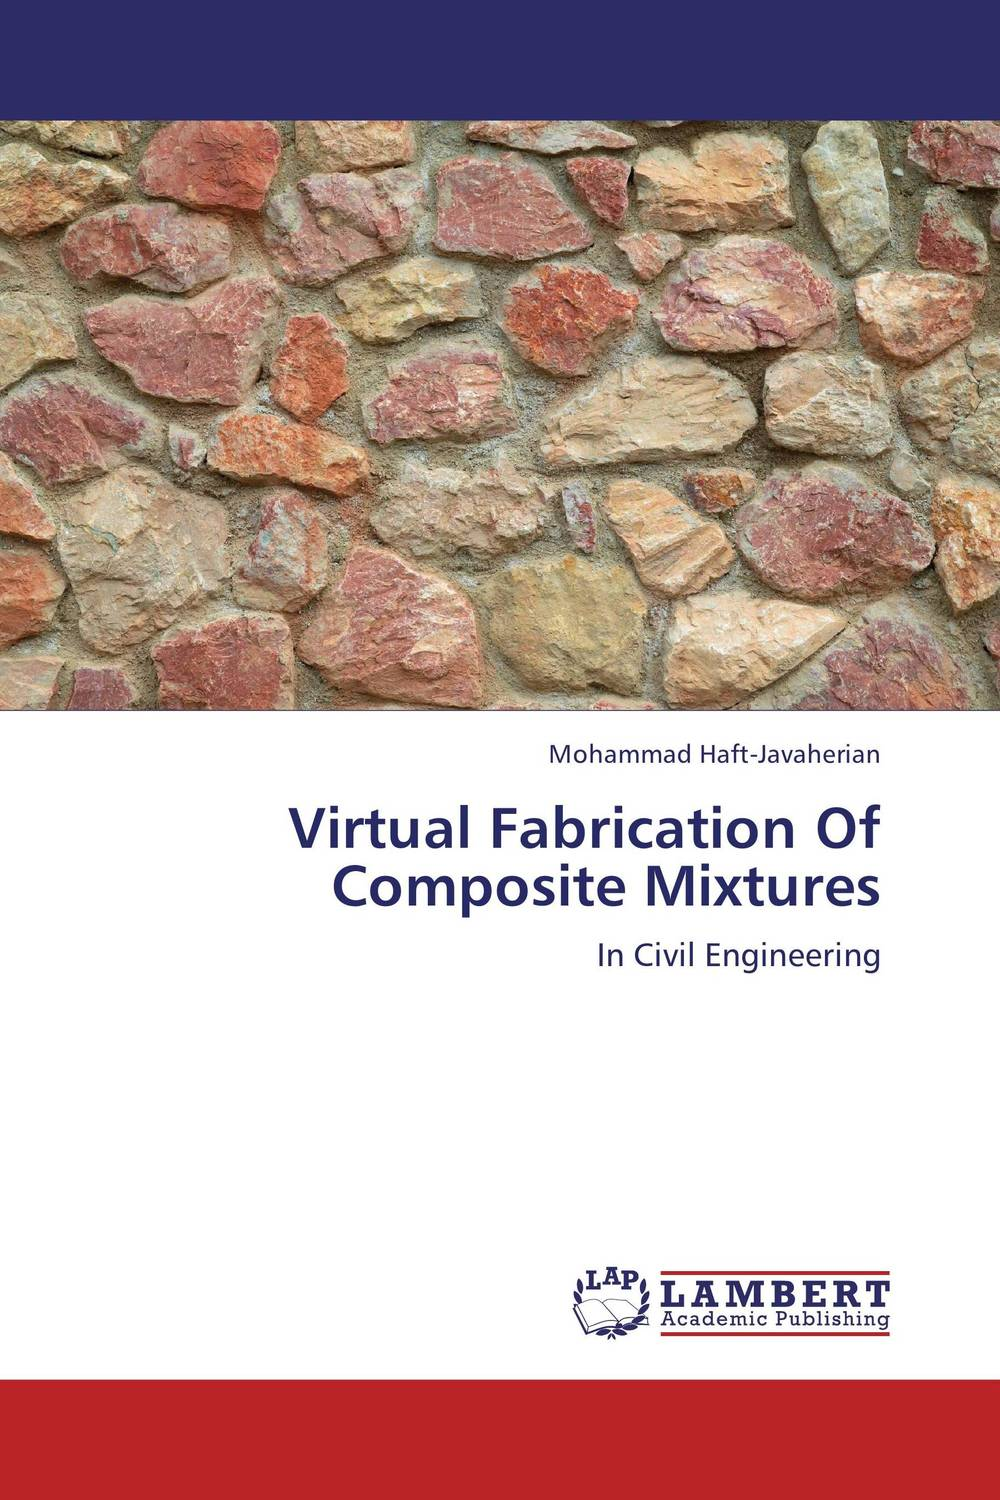 Virtual Fabrication Of Composite Mixtures бёрджин марк динозавры и другие доисторические создания